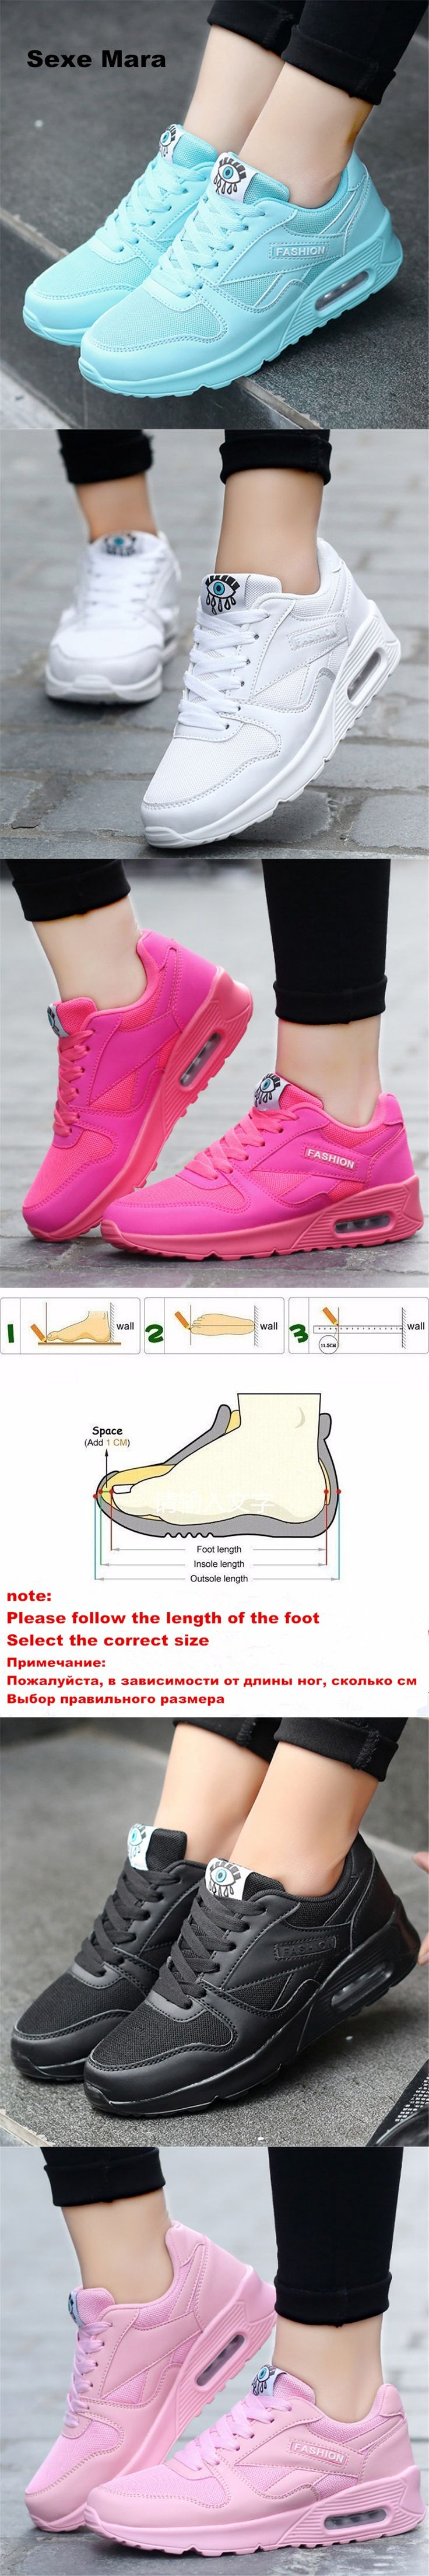 2017 Hot Sale Running shoes for women Sneakers women Arena shoes air damping Outdoor Sport shoes woman Trainers Athletic Walking